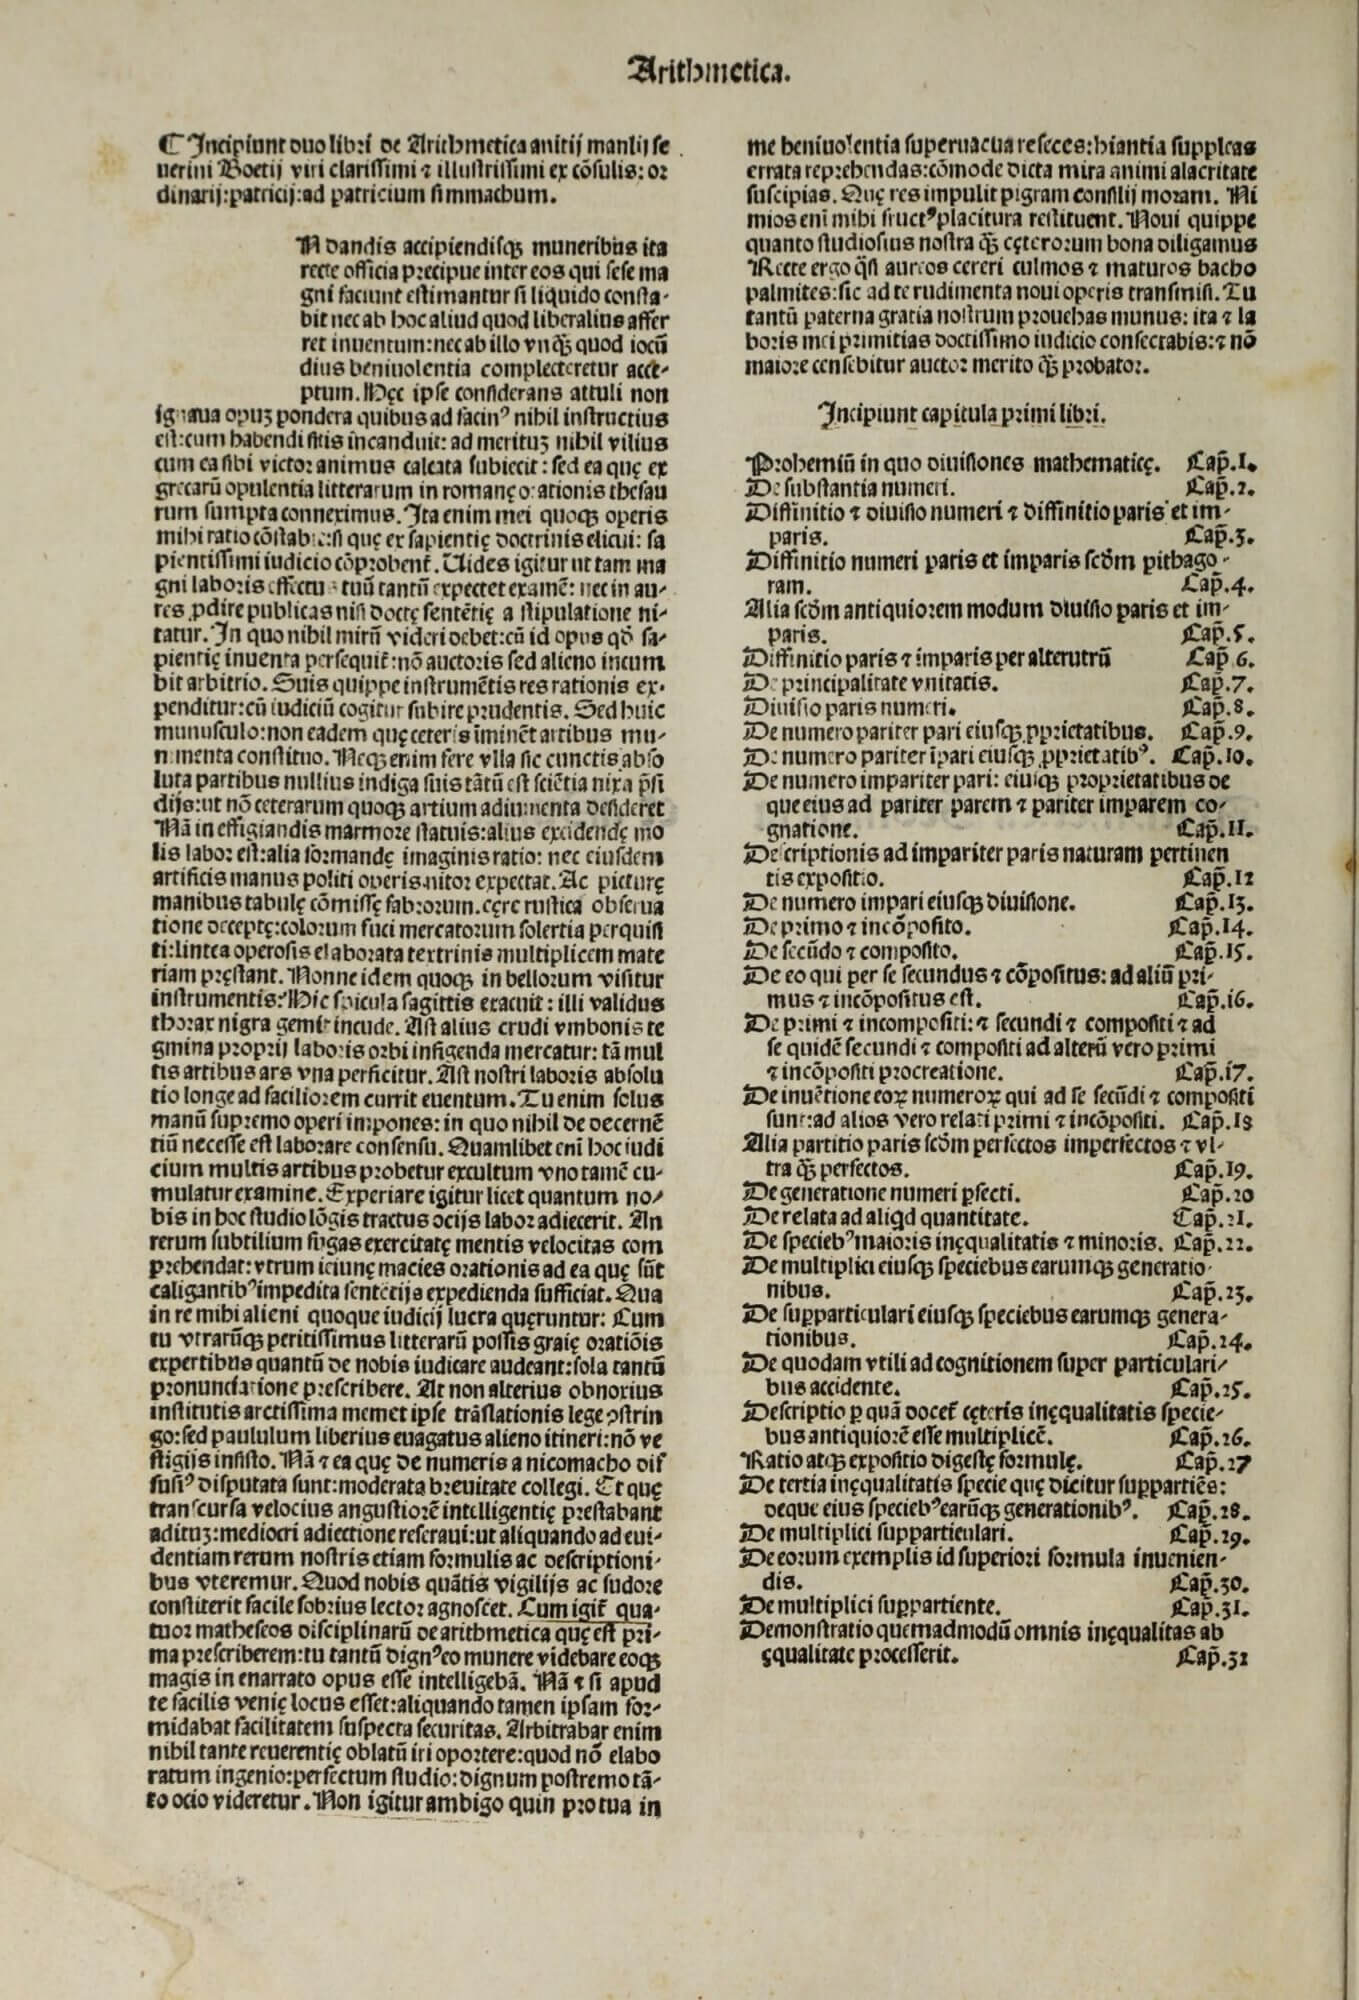 """The text of this edition begins """"Incipiunt duo libri de Arthimetica"""" but the title of the book is taken not from this phrase, but from the title label on the previous page. The space for the initial letter, like others in this volume, has been left unfilled."""